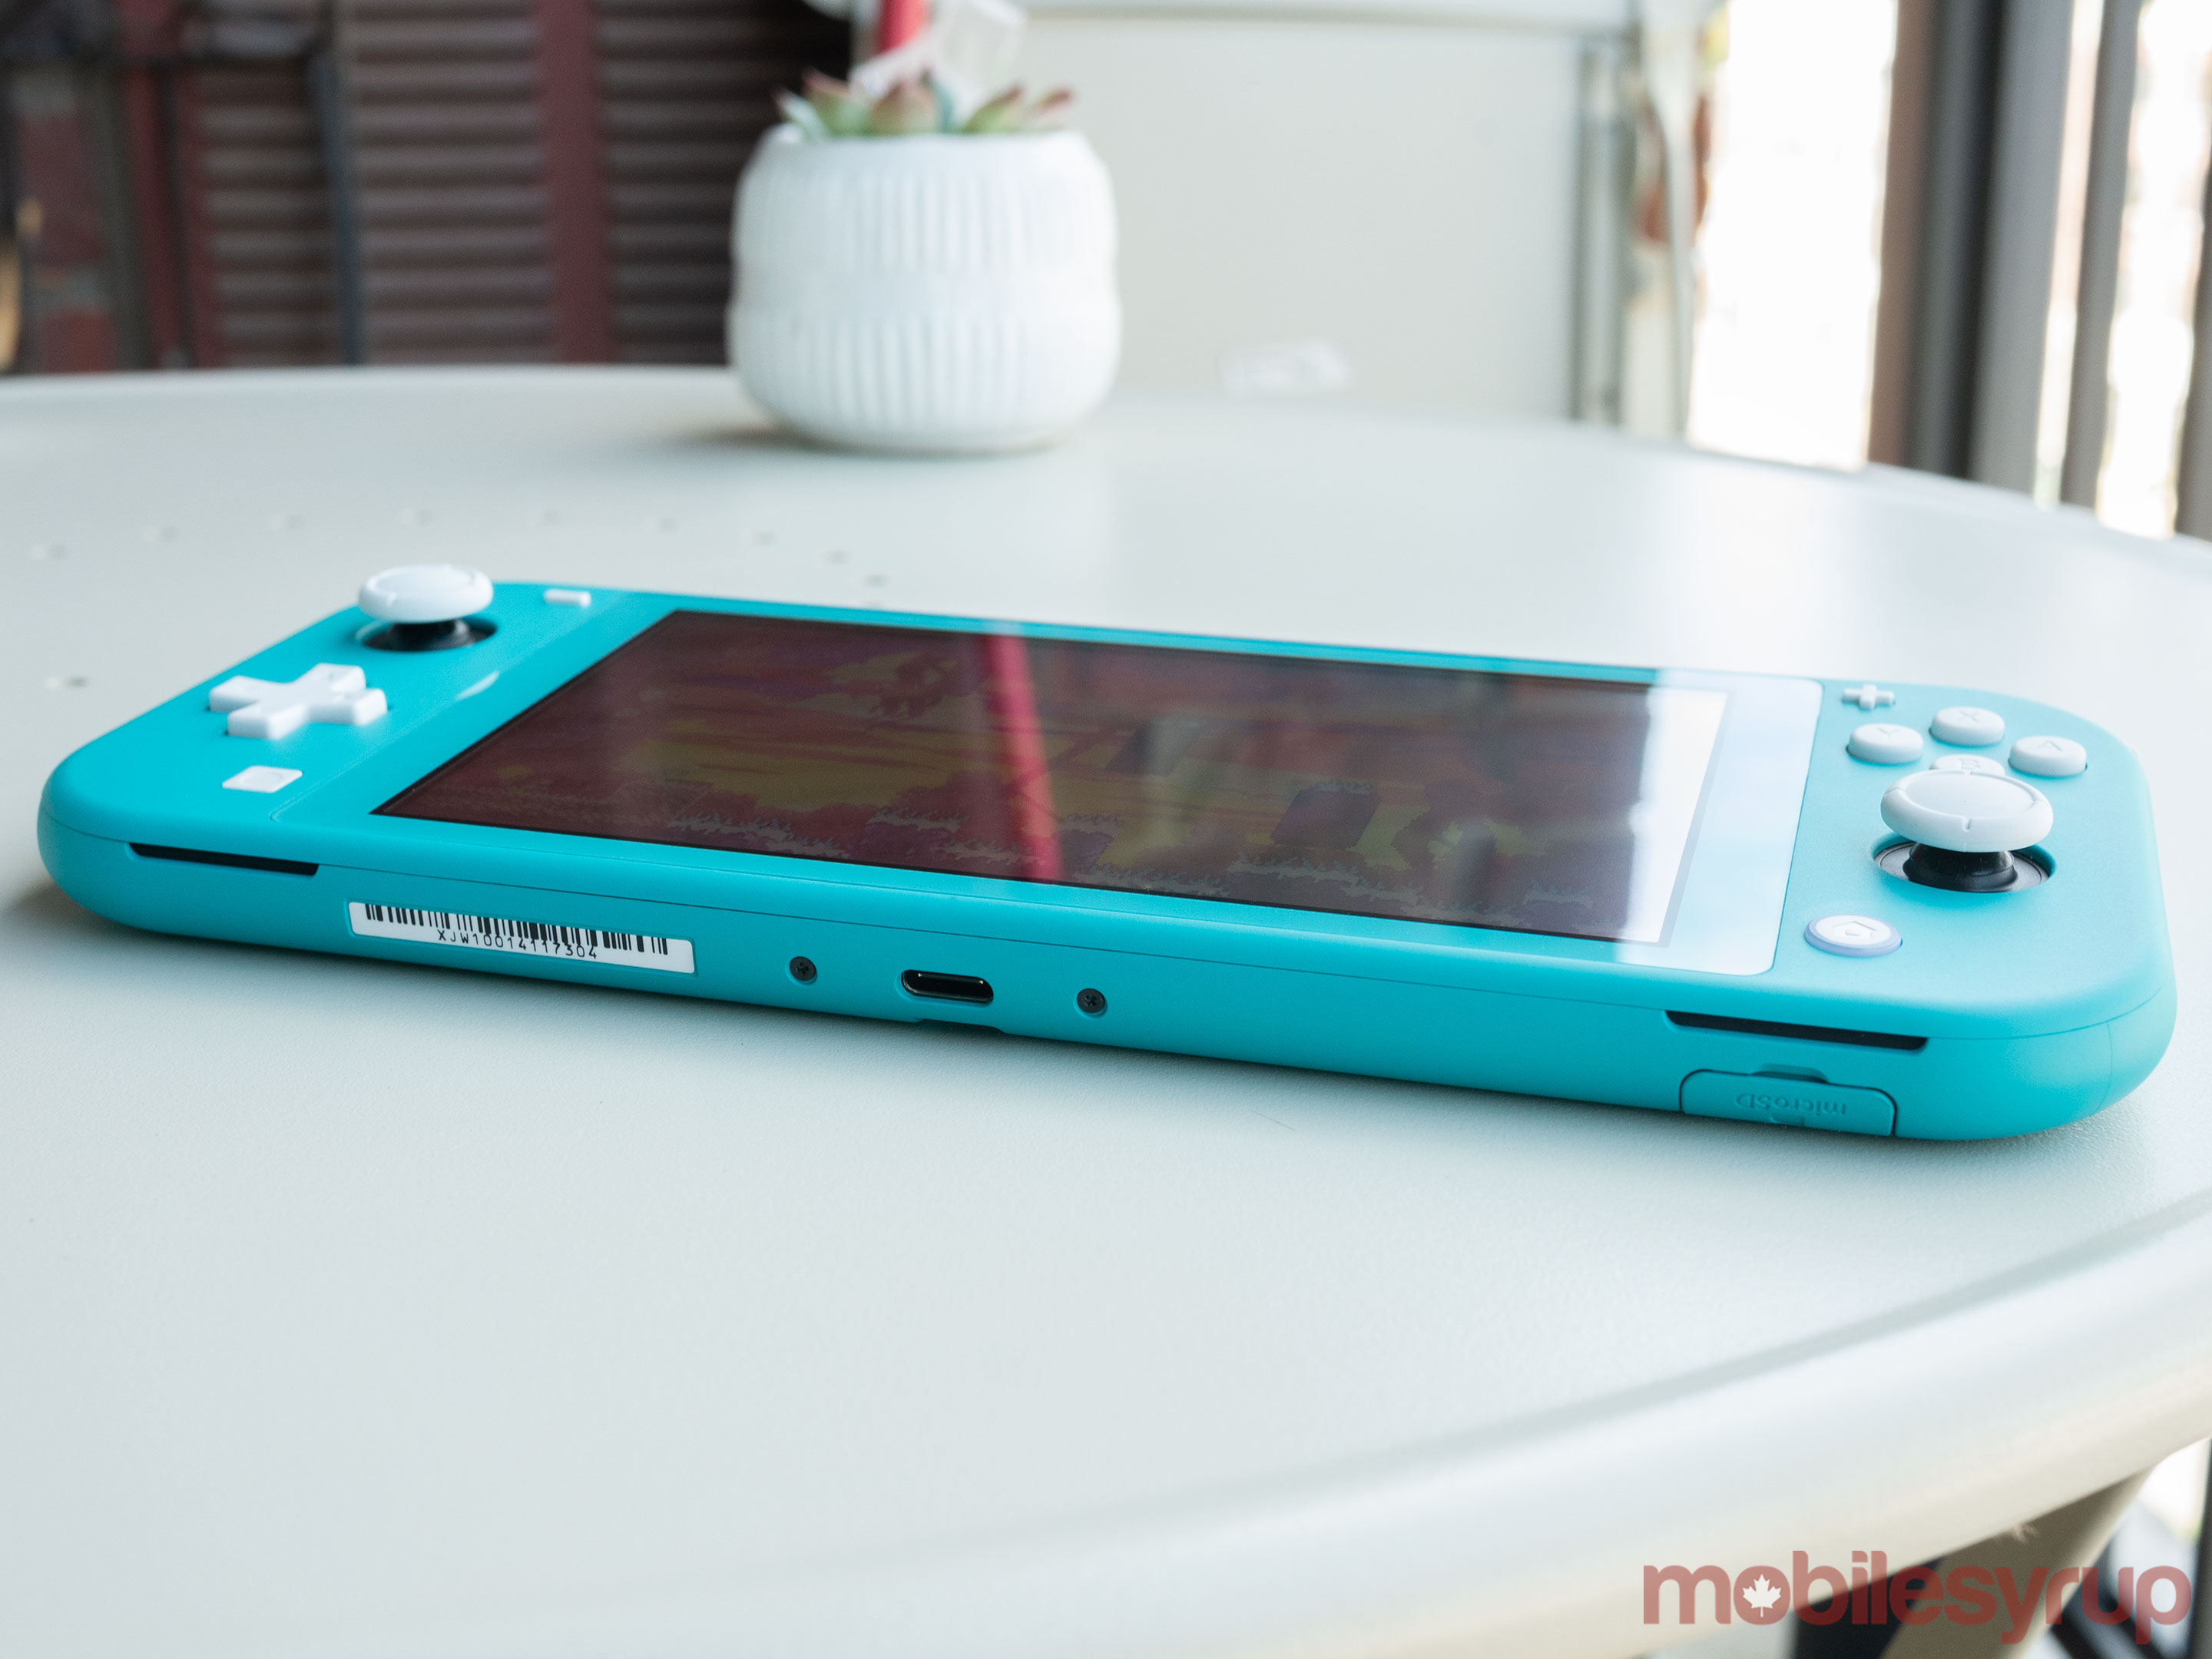 Switch Lite side view